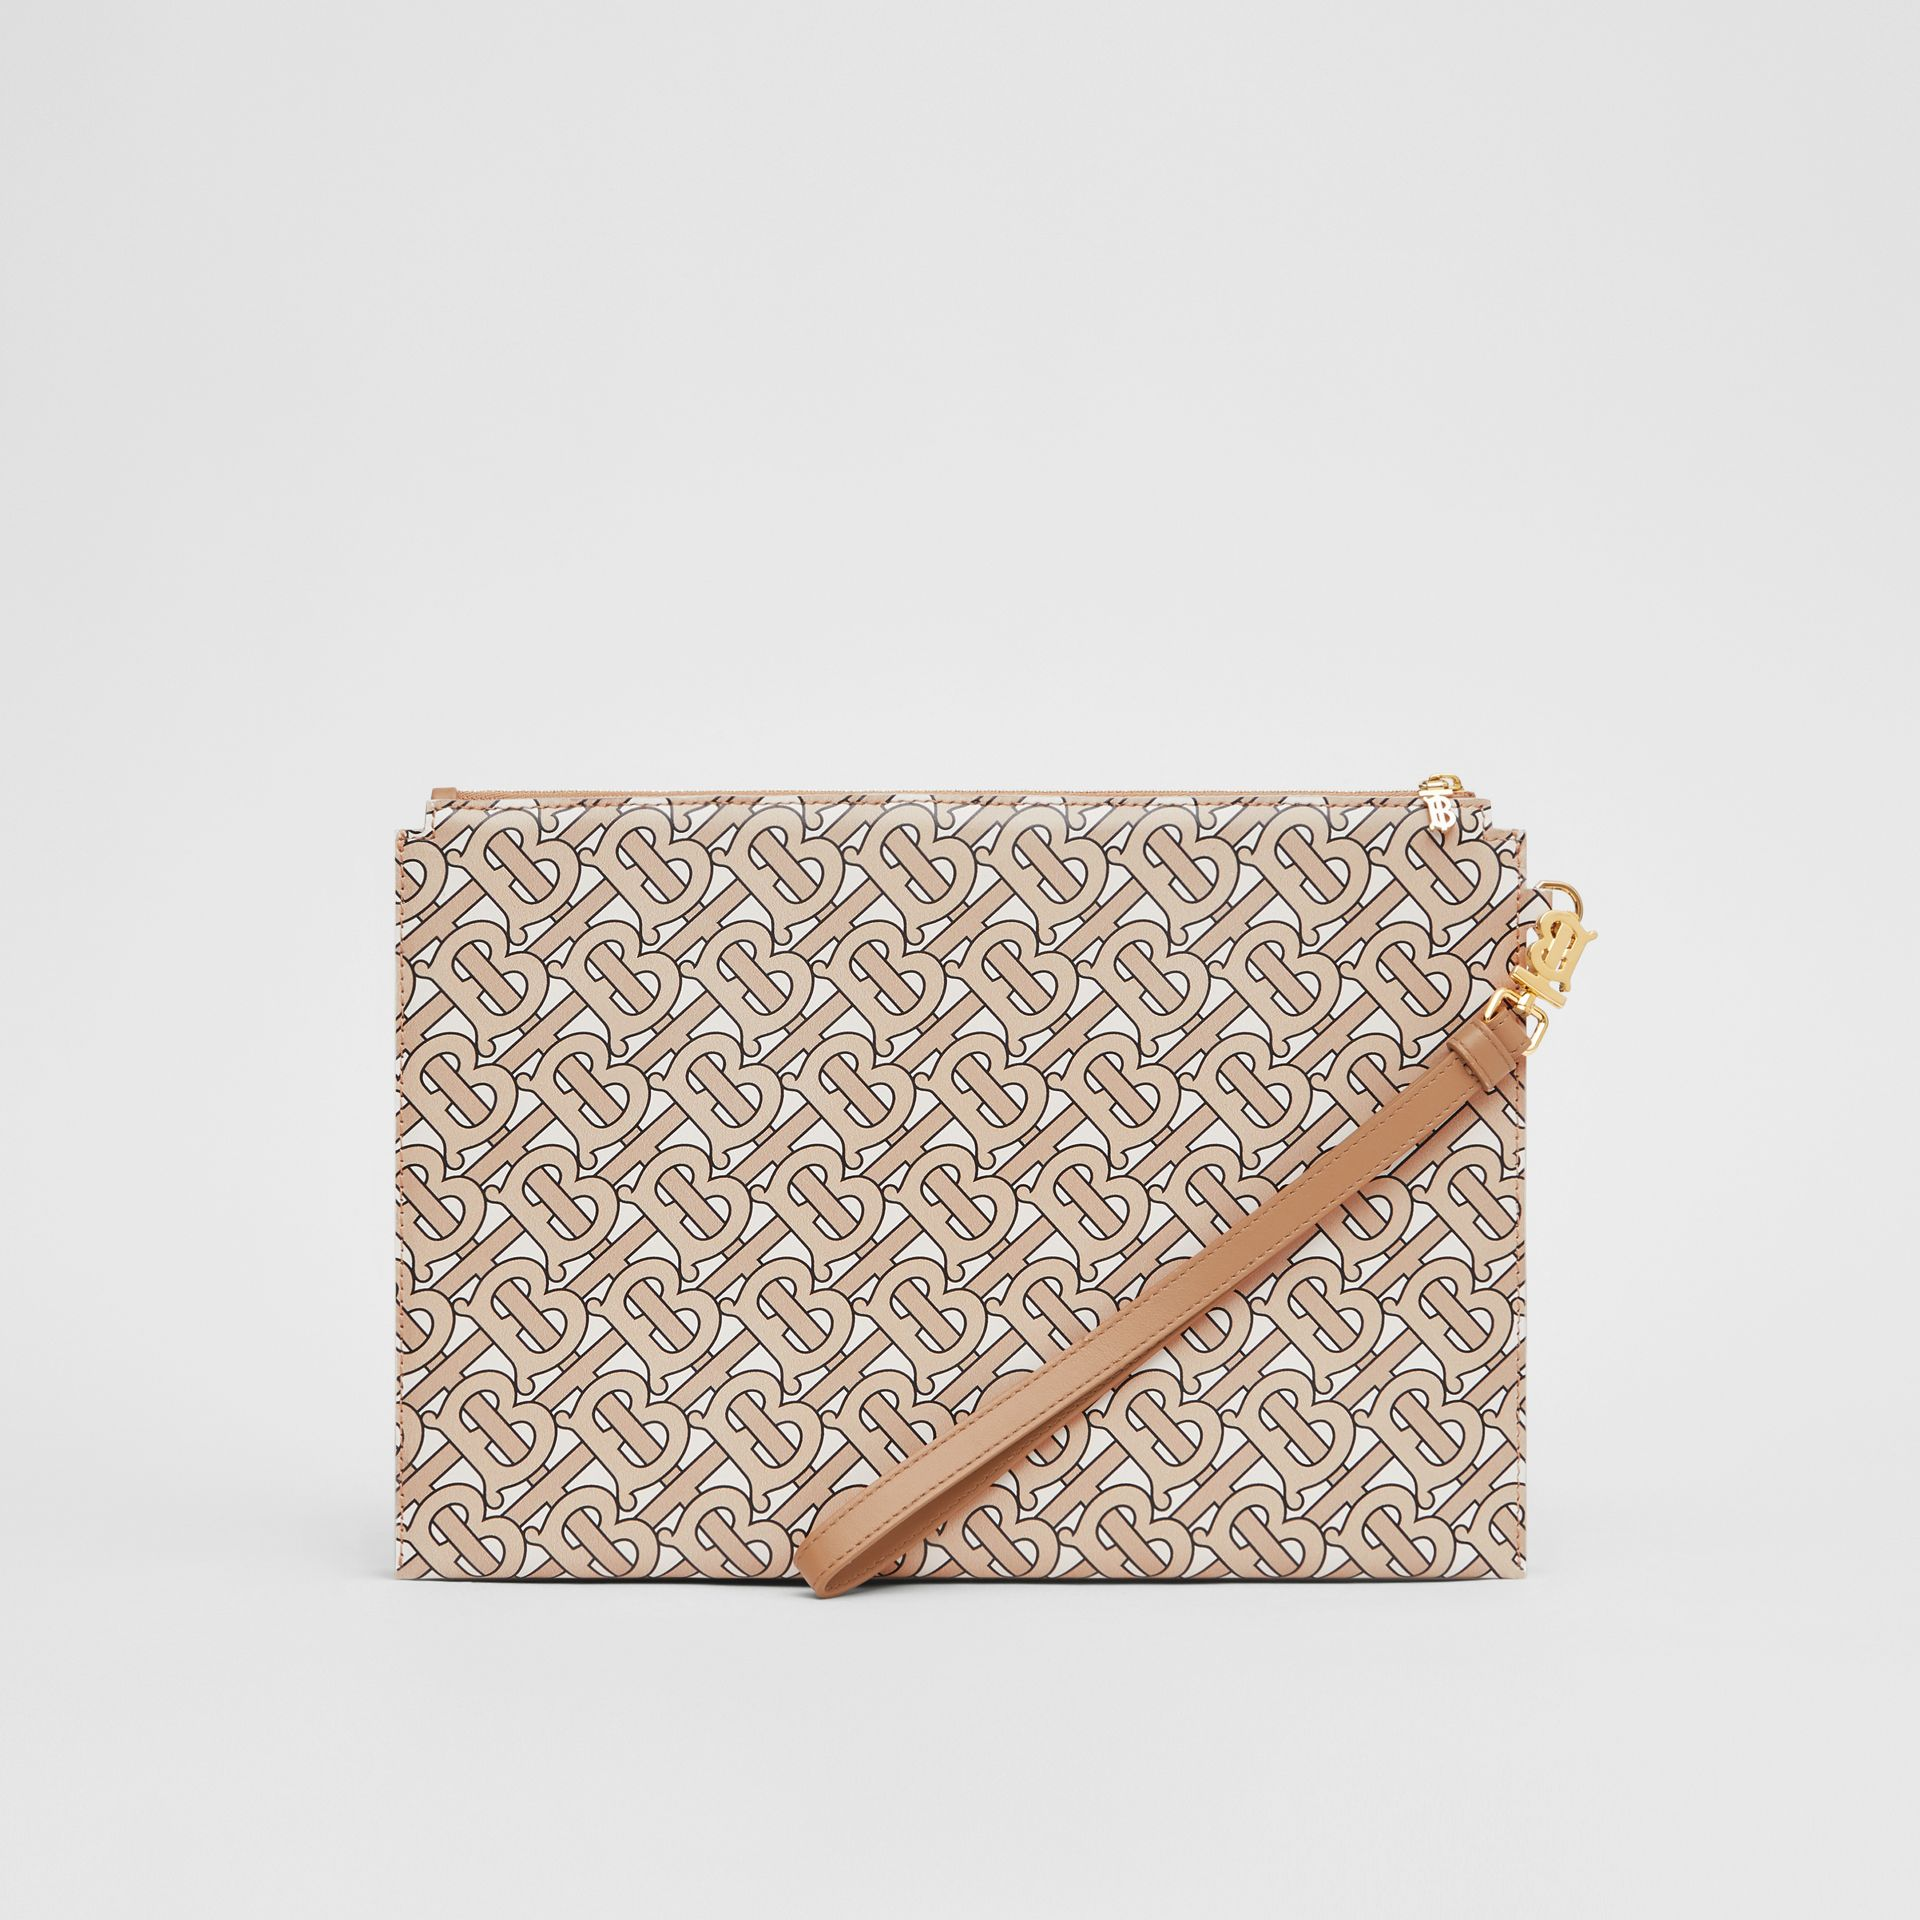 Monogram Print Leather Pouch in Beige - Women | Burberry - gallery image 6